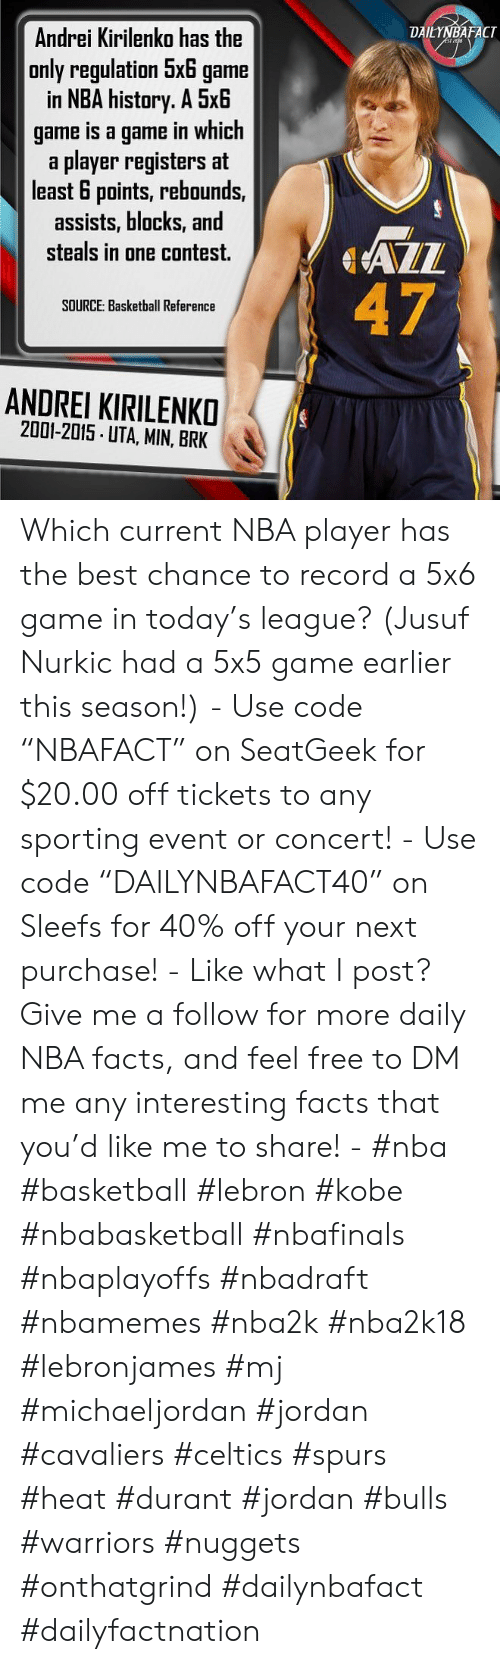 "Basketball, Facts, and Nba: Andrei Kirilenko has the  only regulation 5x6 game  in NBA history. A 5x6  game is a game in which  a player registers at  least 6 points, rebounds,  assists, blocks, and  steals in one contest.  DAILYNBAFACT  47  SOURCE: Basketball Reference  ANDREI KIRILENKO  2001-2015 UTA, MIN, BRK Which current NBA player has the best chance to record a 5x6 game in today's league? (Jusuf Nurkic had a 5x5 game earlier this season!) - Use code ""NBAFACT"" on SeatGeek for $20.00 off tickets to any sporting event or concert! - Use code ""DAILYNBAFACT40"" on Sleefs for 40% off your next purchase! - Like what I post? Give me a follow for more daily NBA facts, and feel free to DM me any interesting facts that you'd like me to share! - #nba #basketball #lebron #kobe #nbabasketball #nbafinals #nbaplayoffs #nbadraft #nbamemes #nba2k #nba2k18 #lebronjames #mj #michaeljordan #jordan #cavaliers #celtics #spurs #heat #durant #jordan #bulls #warriors #nuggets #onthatgrind #dailynbafact #dailyfactnation"